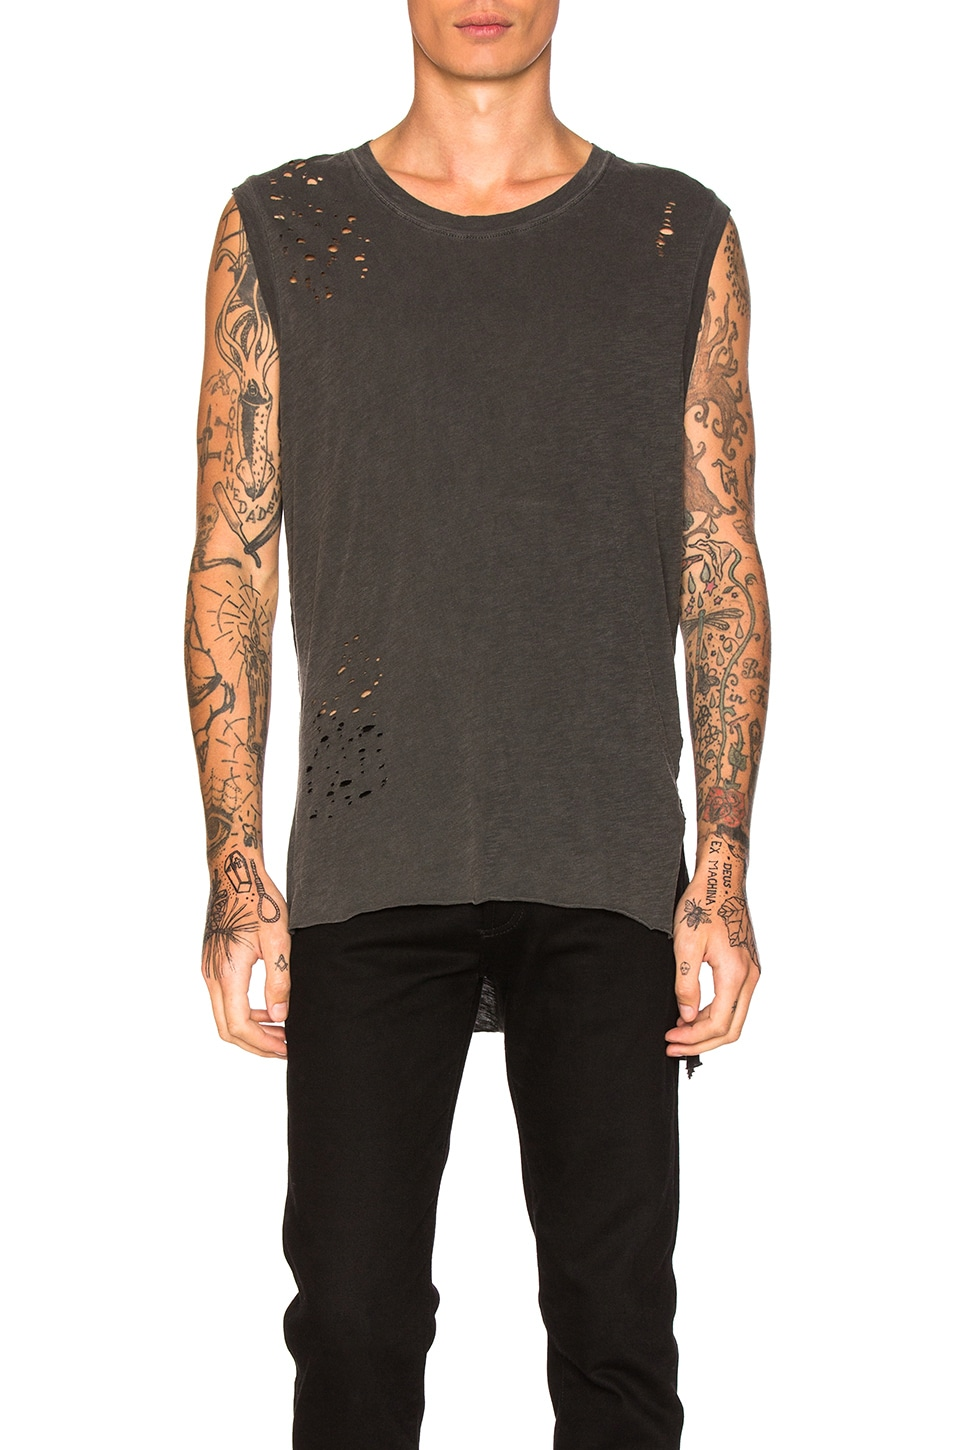 Photo of Ethan Tank by NSF men clothes